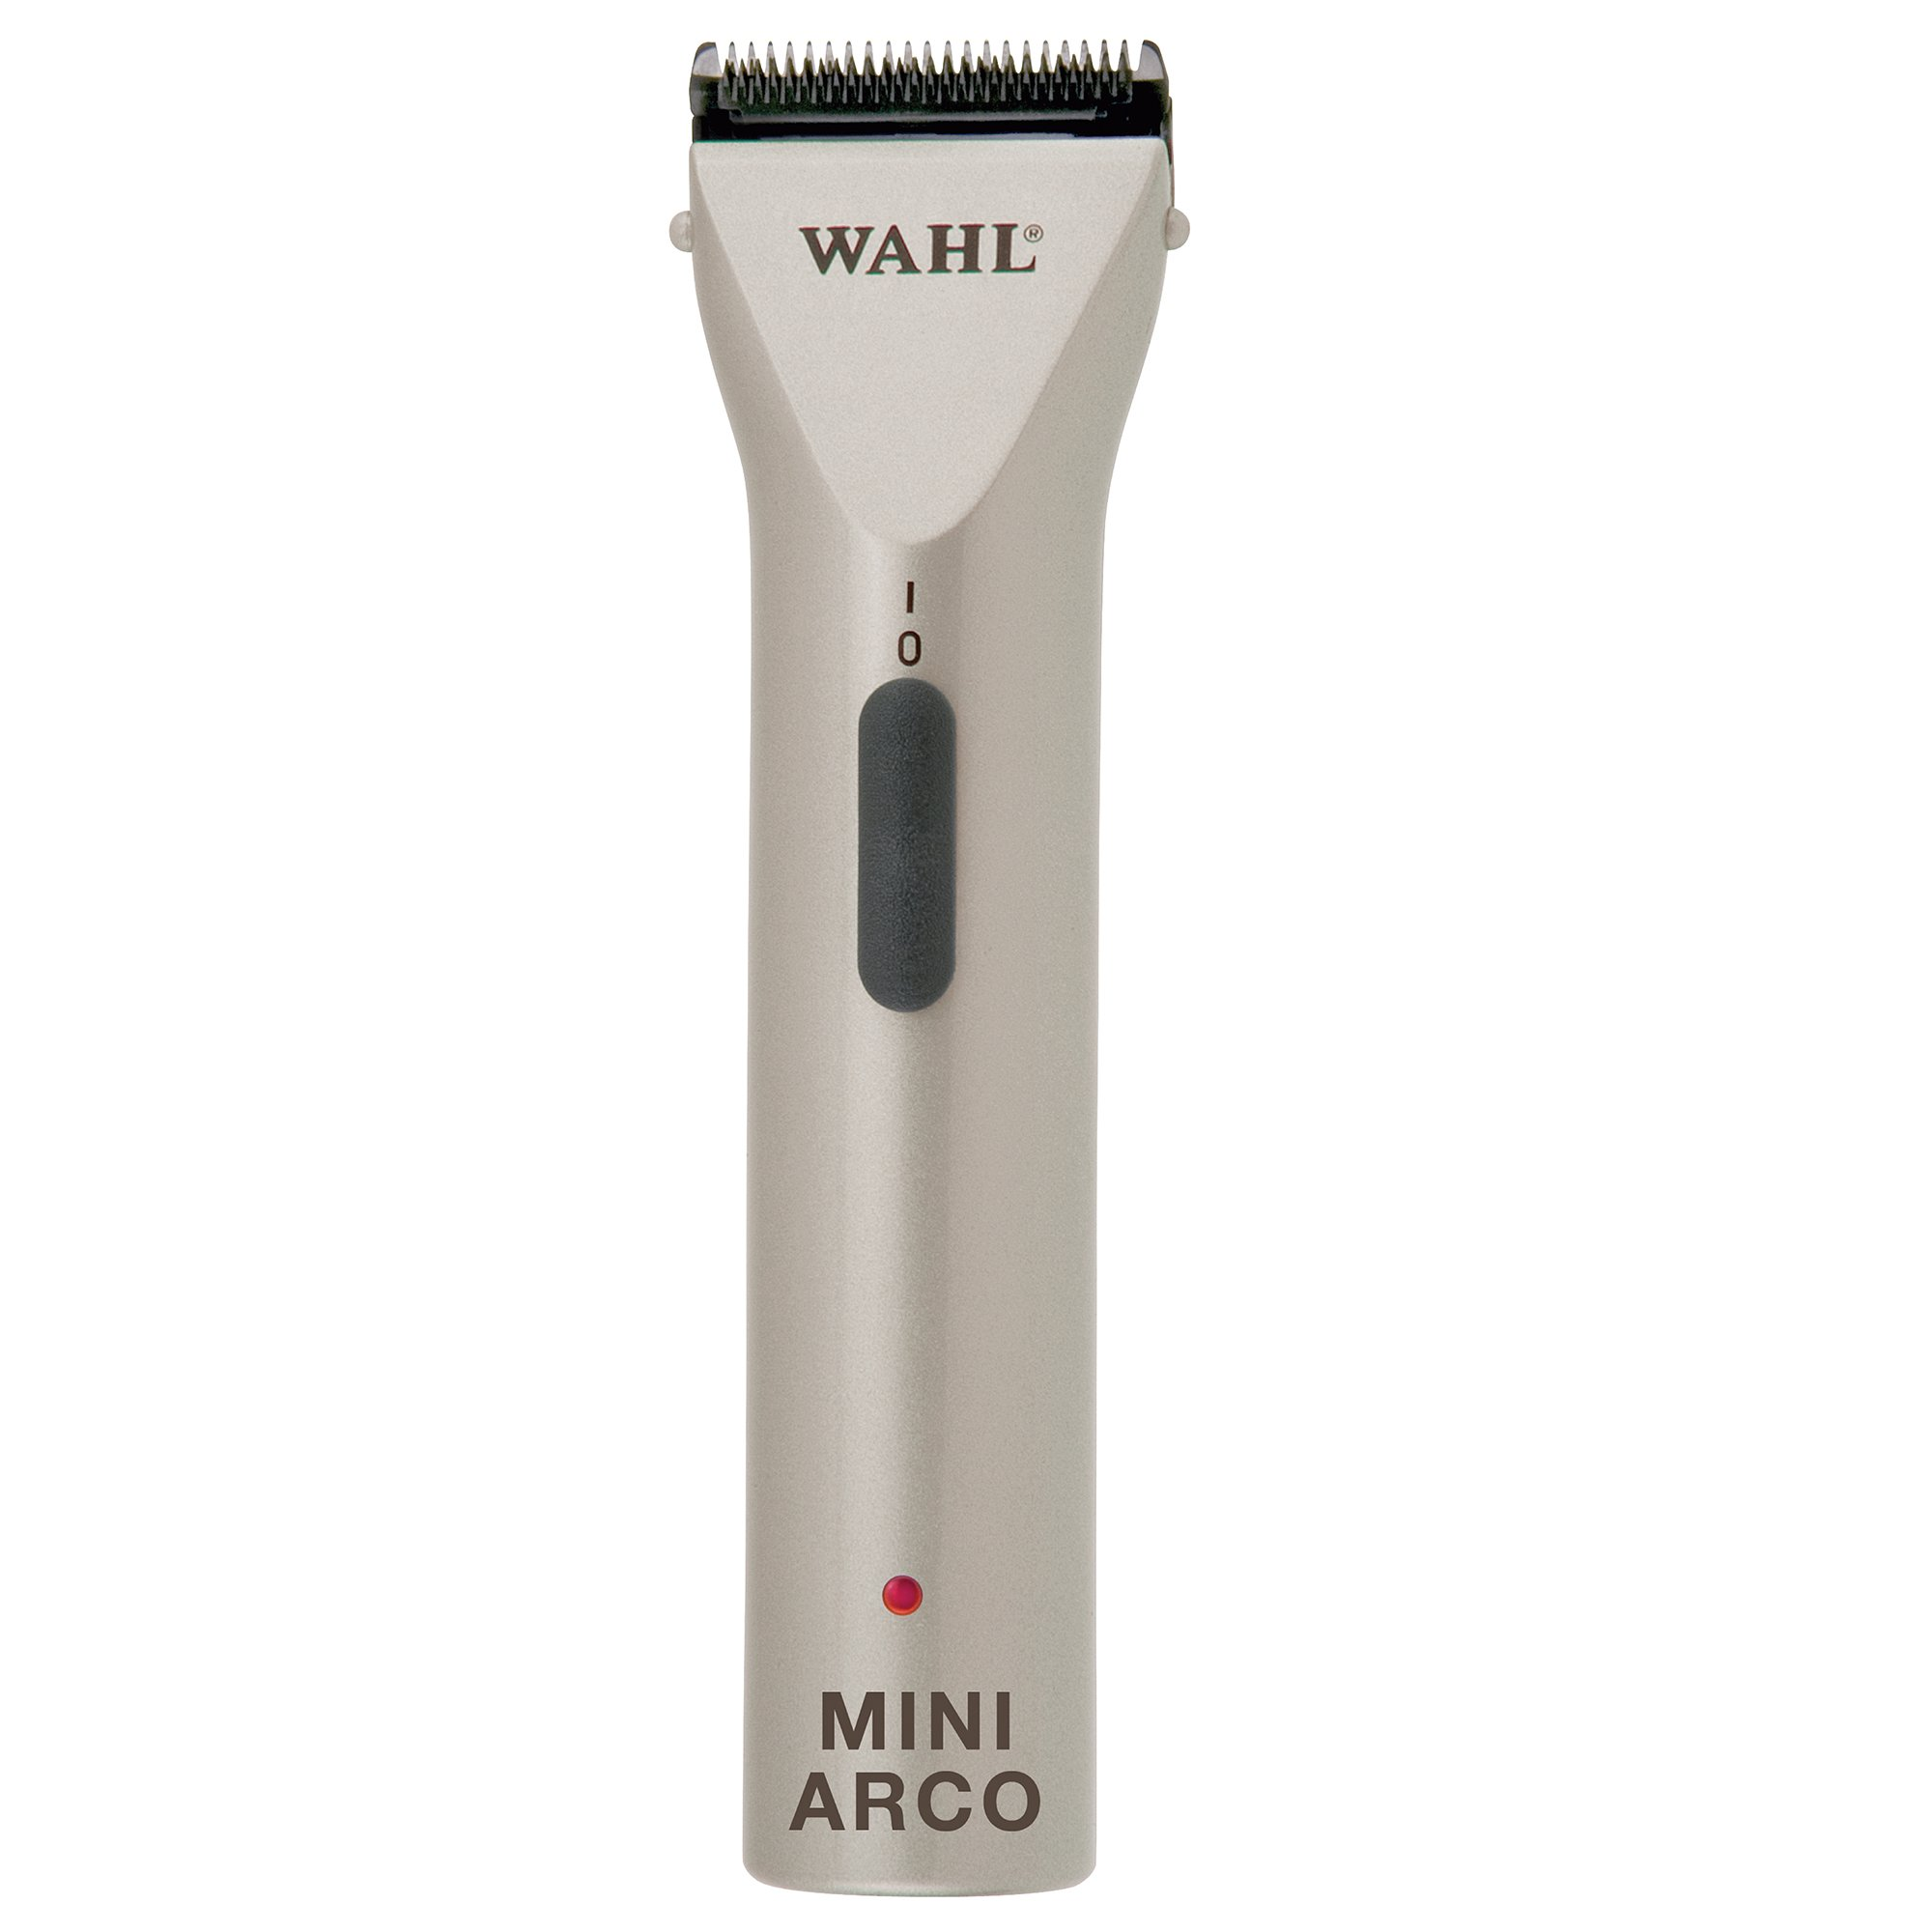 Wahl Professional Animal MiniArco Cord/Cordless Animal Trimmer #8787-450A